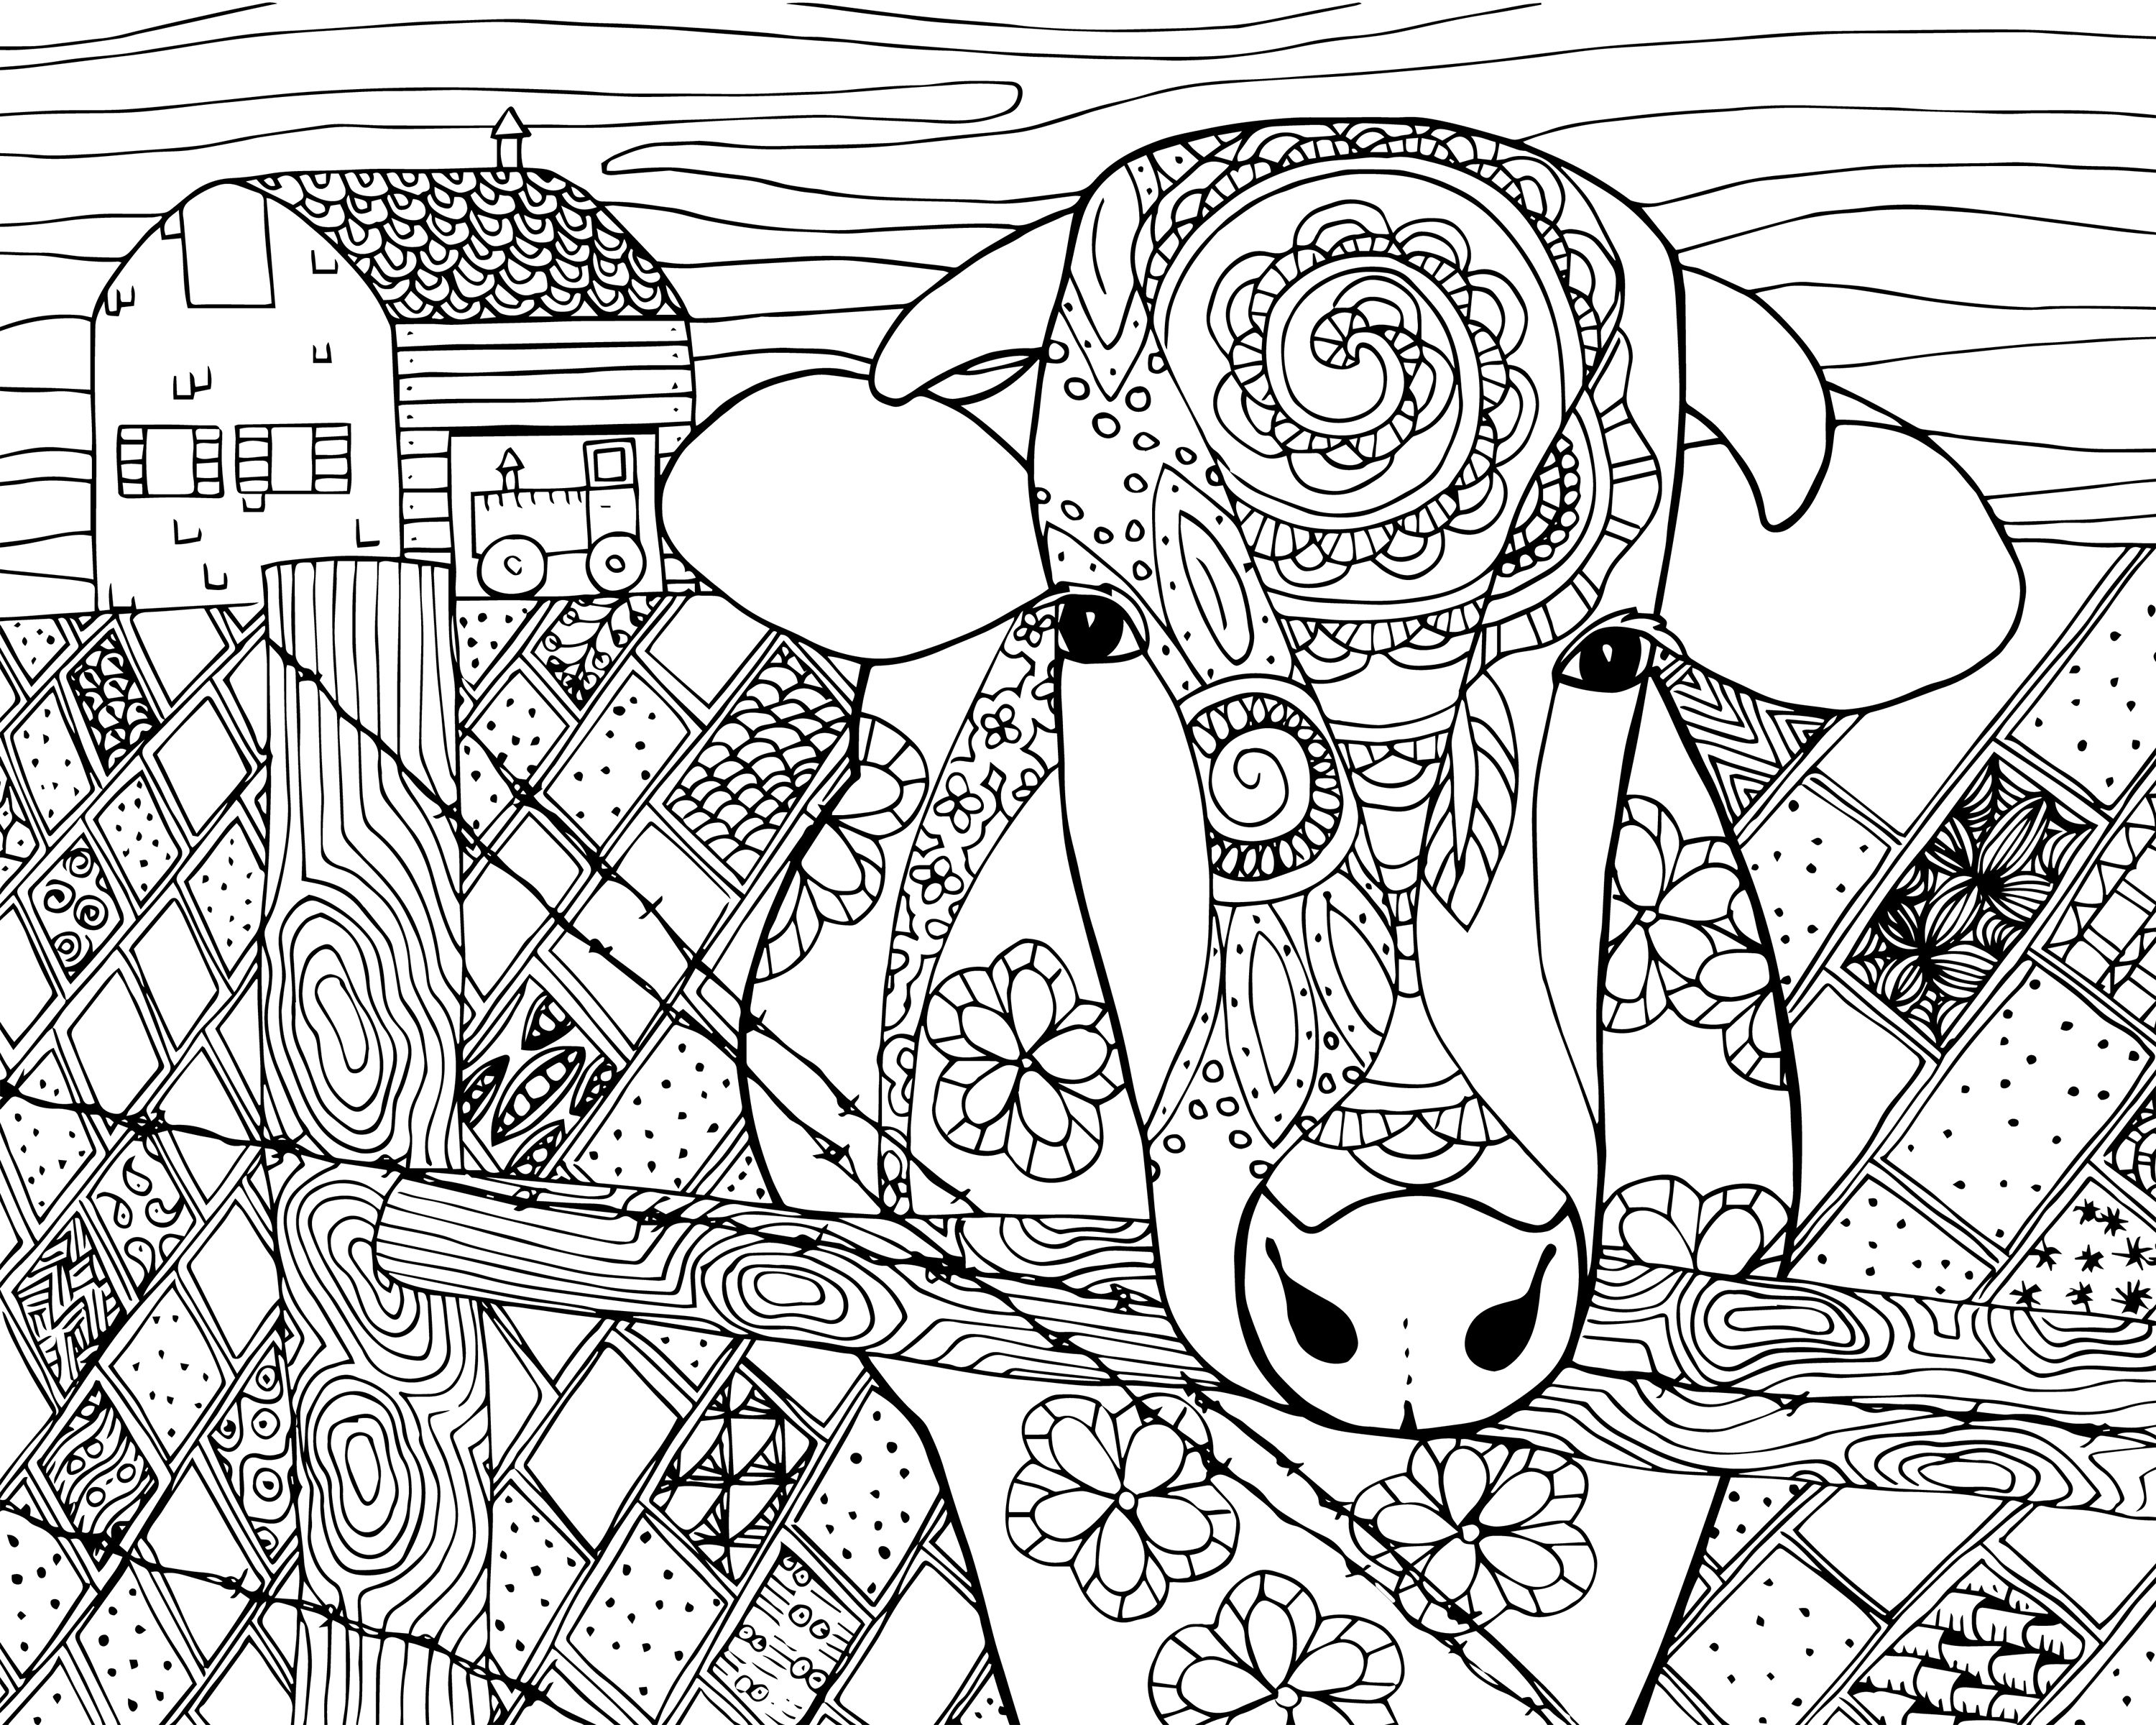 Free Coloring Pages Adults Art And Abstract Category Image 62 ...